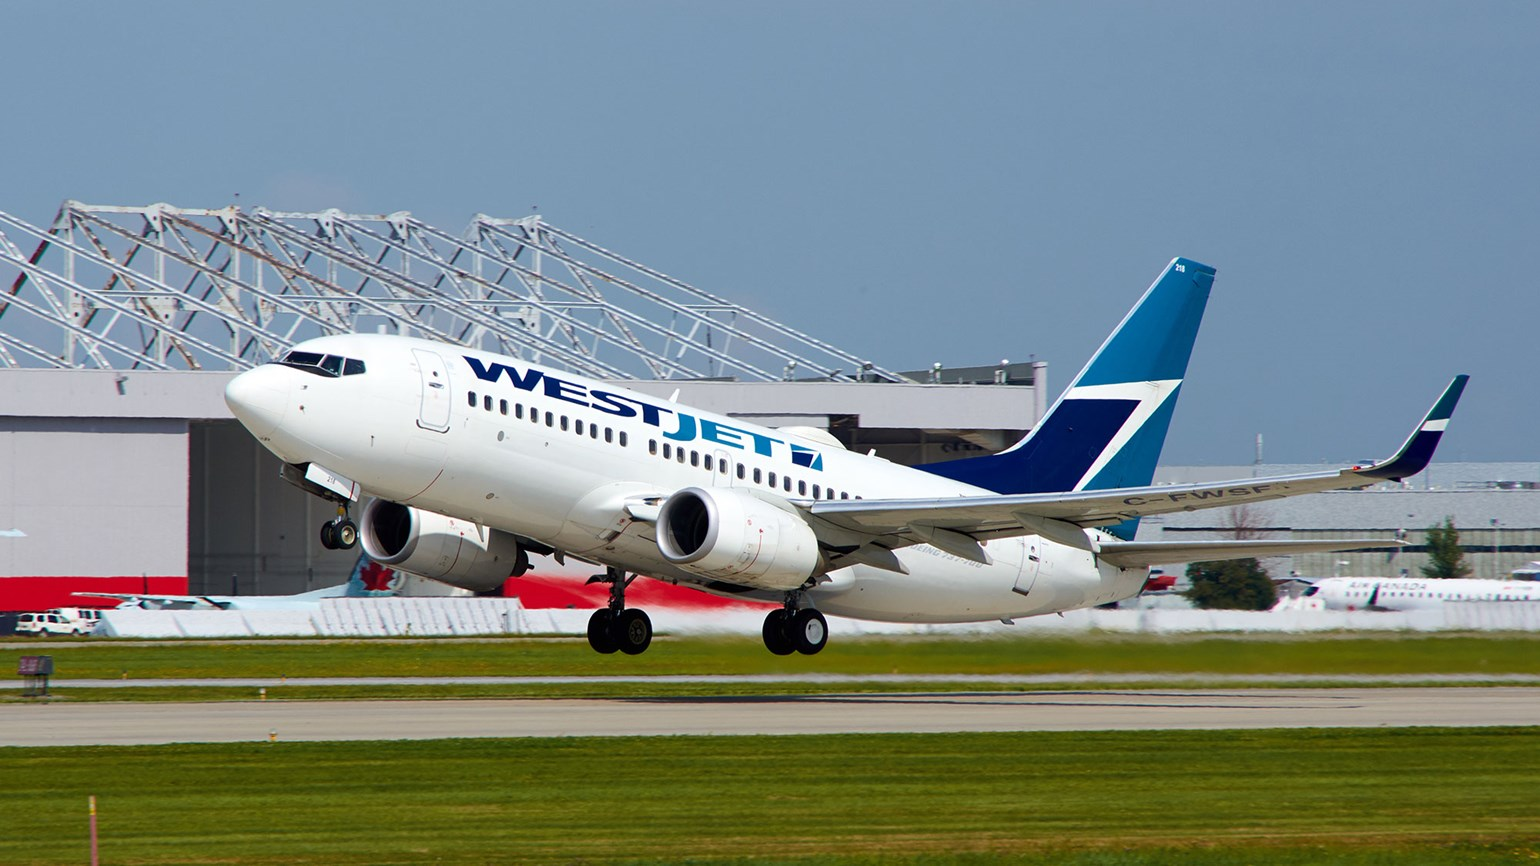 Delta and WestJet request to form immunized joint venture